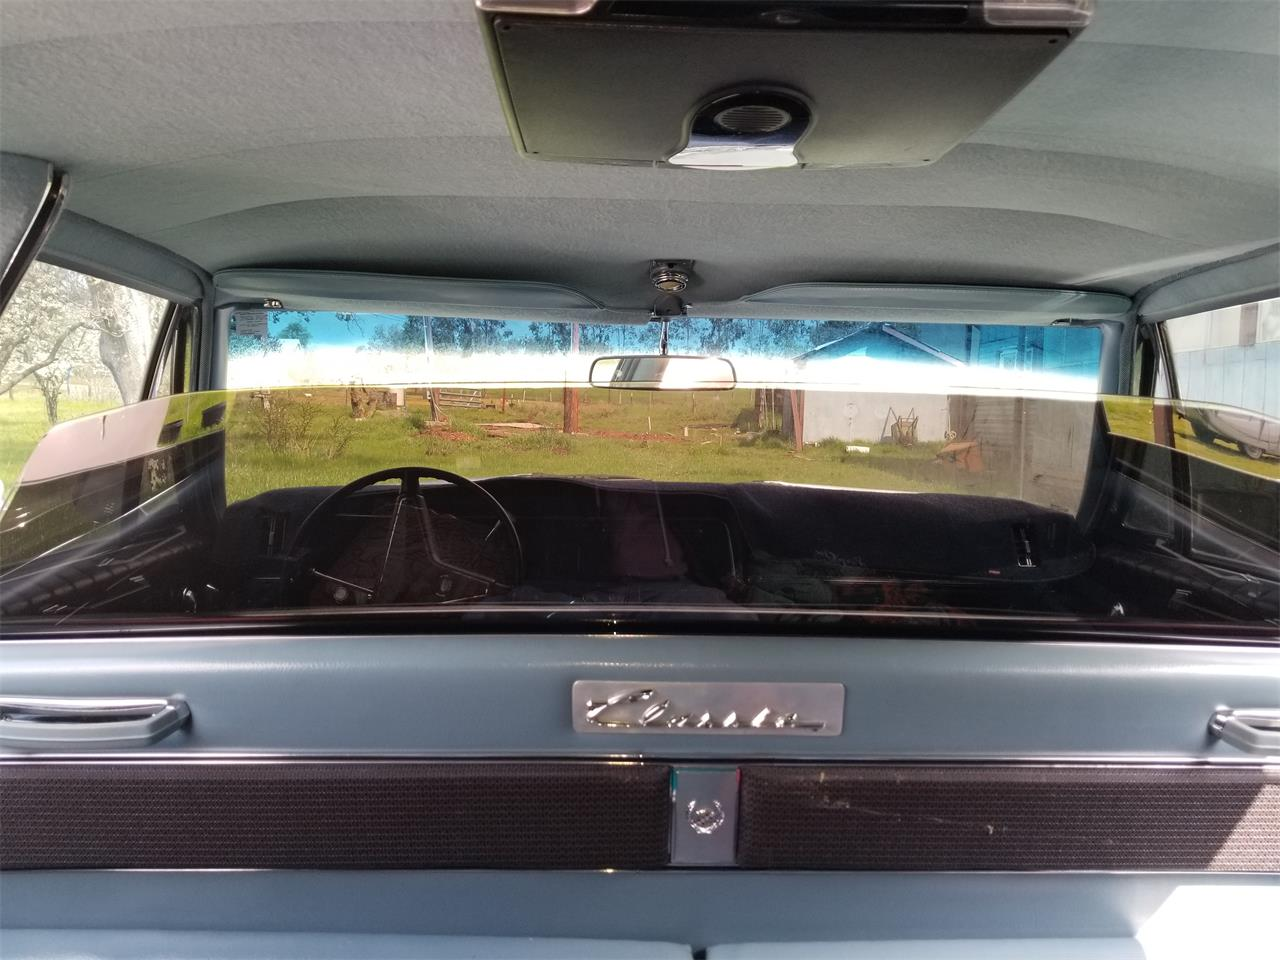 Large Picture of Classic '67 Cadillac Fleetwood Limousine located in Sacramento California - $13,000.00 Offered by a Private Seller - OD55